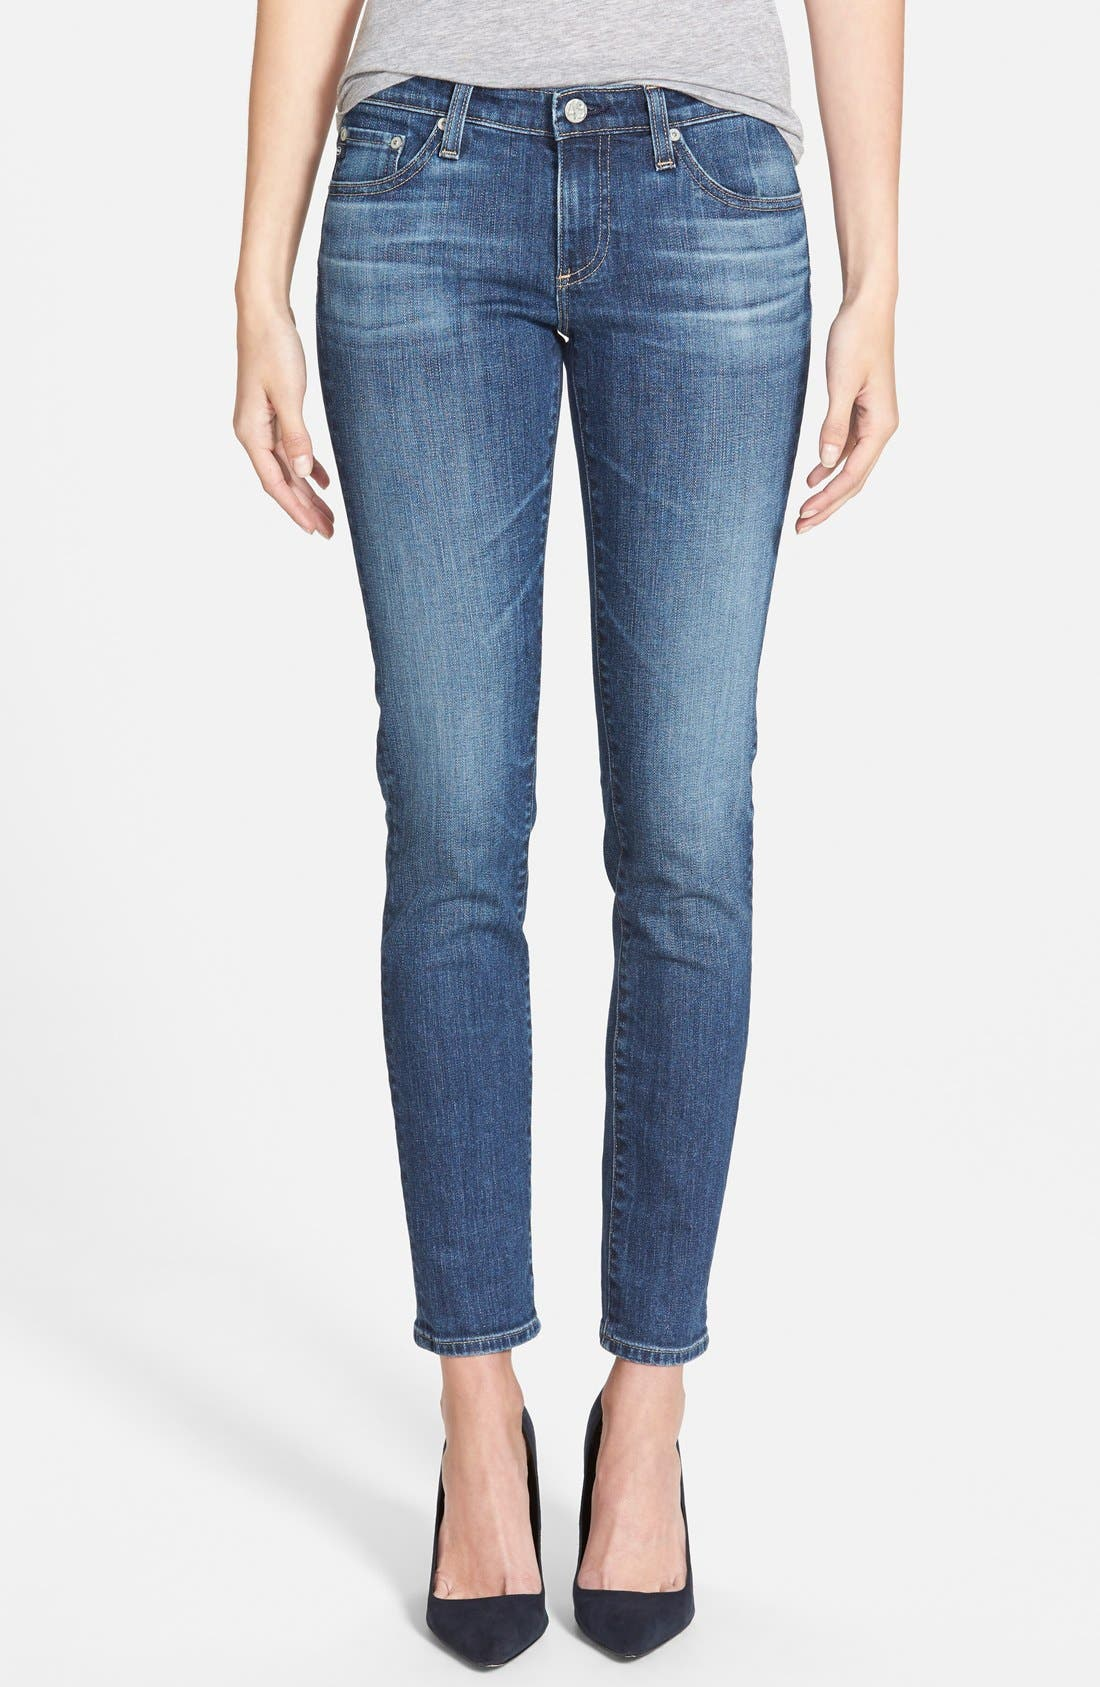 'The Stilt' Cigarette Leg Stretch Jeans,                         Main,                         color, 403